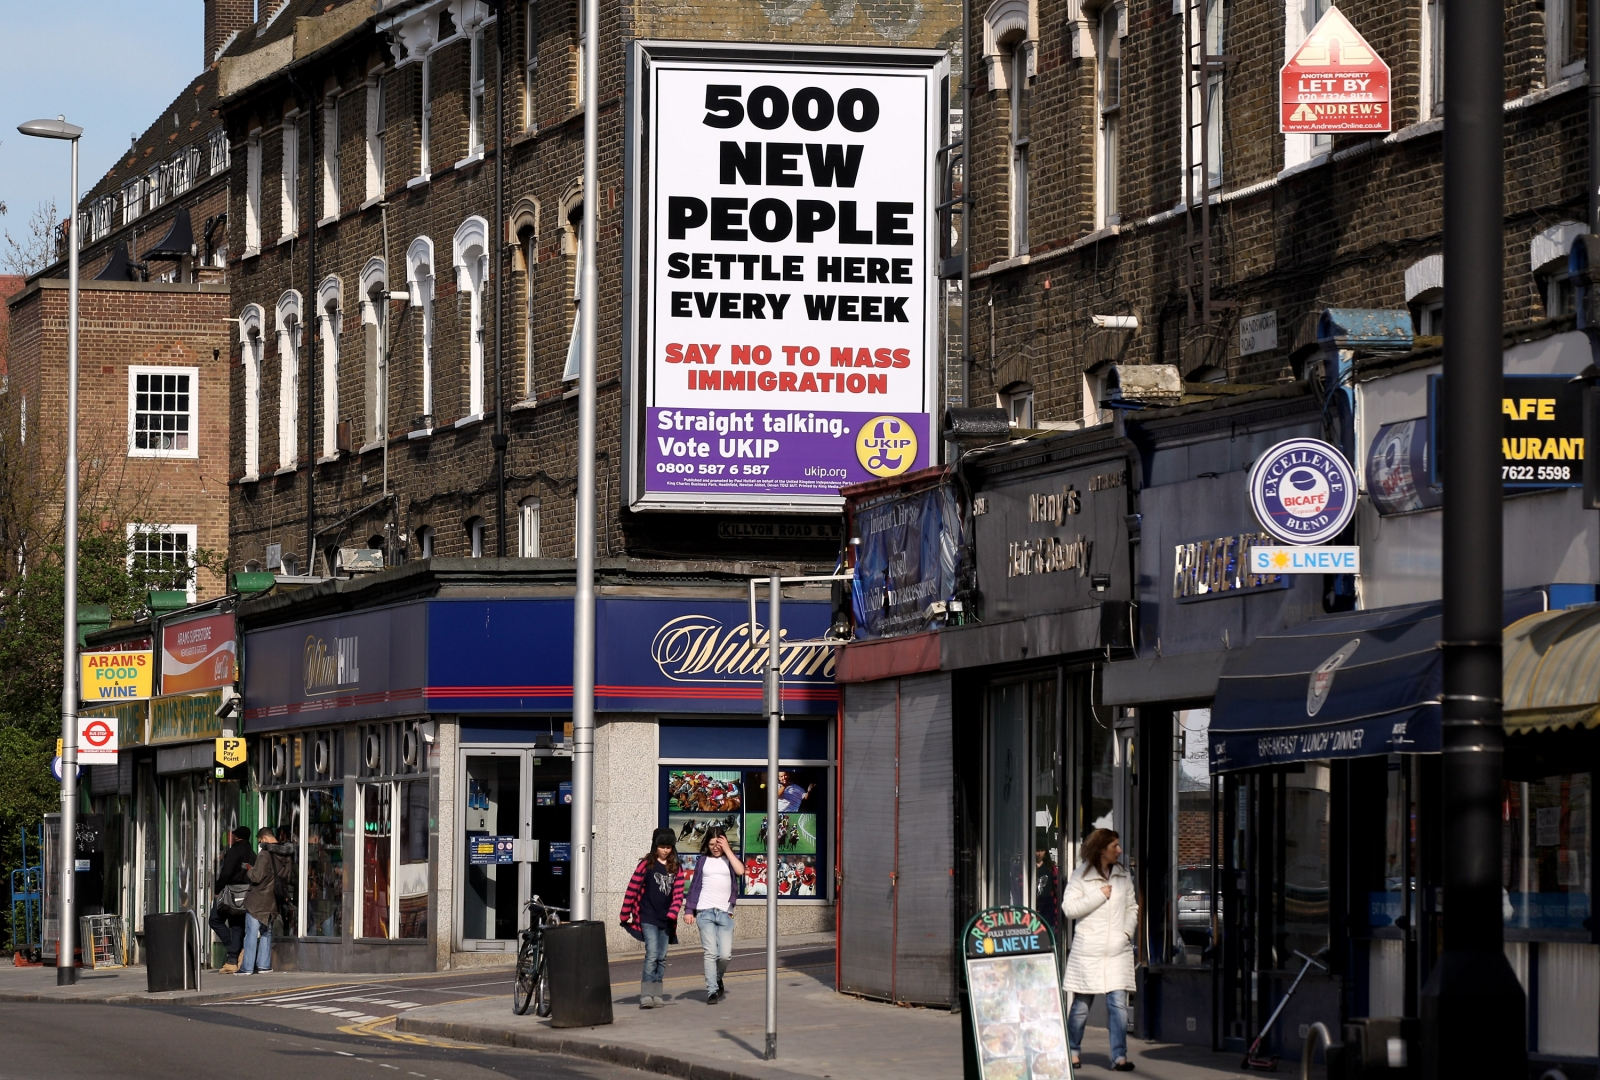 Ukip immigration poster in London